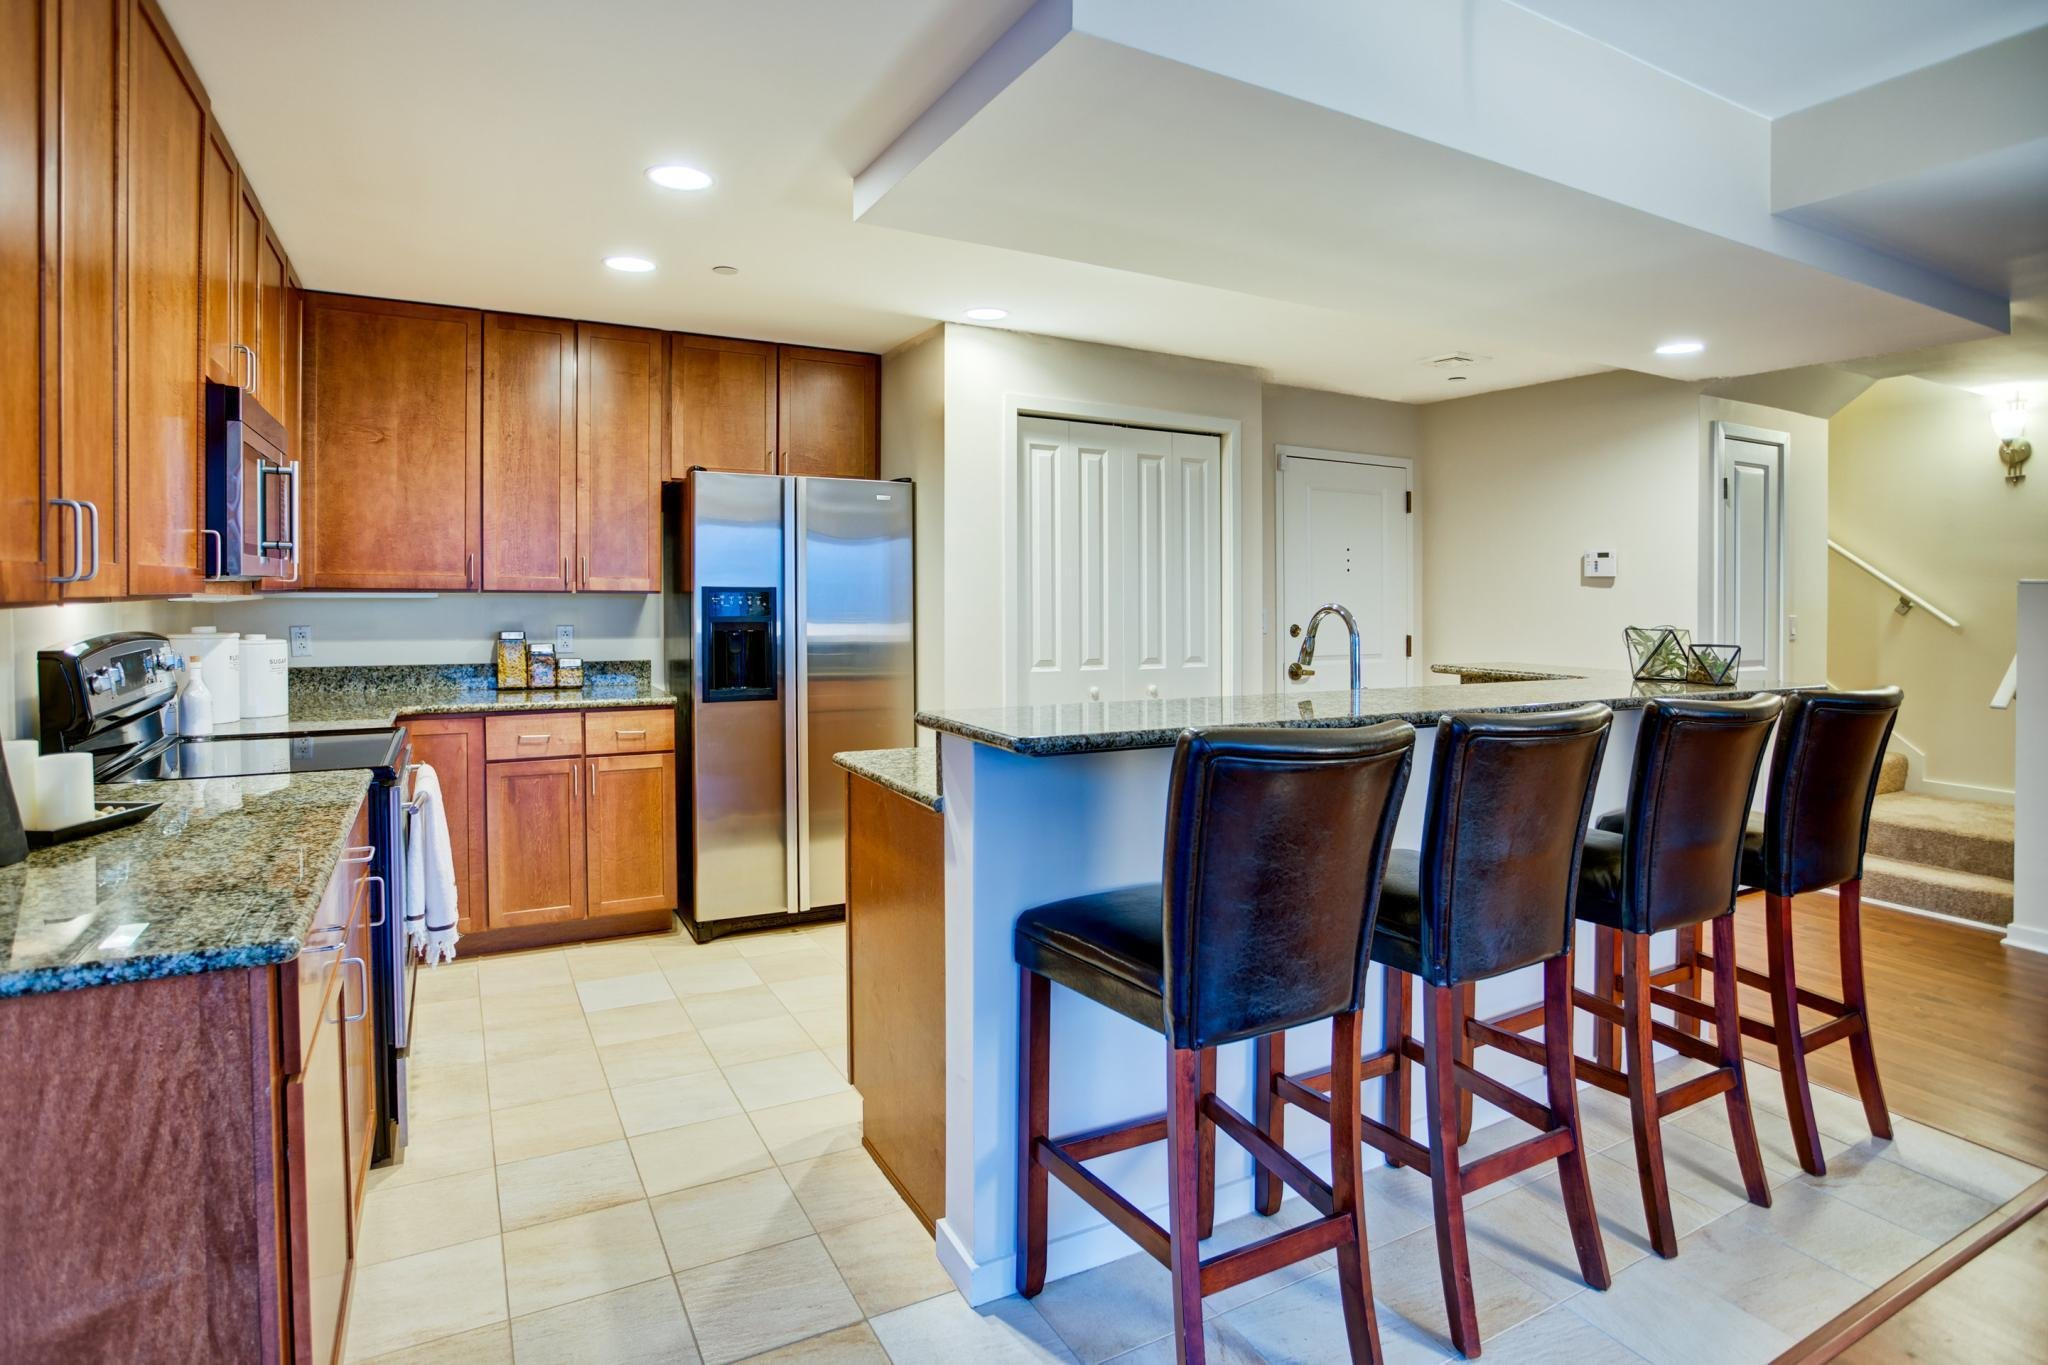 Best 2 Bedroom Apartments In Philadelphia Pa Cheap Houses For With Pictures